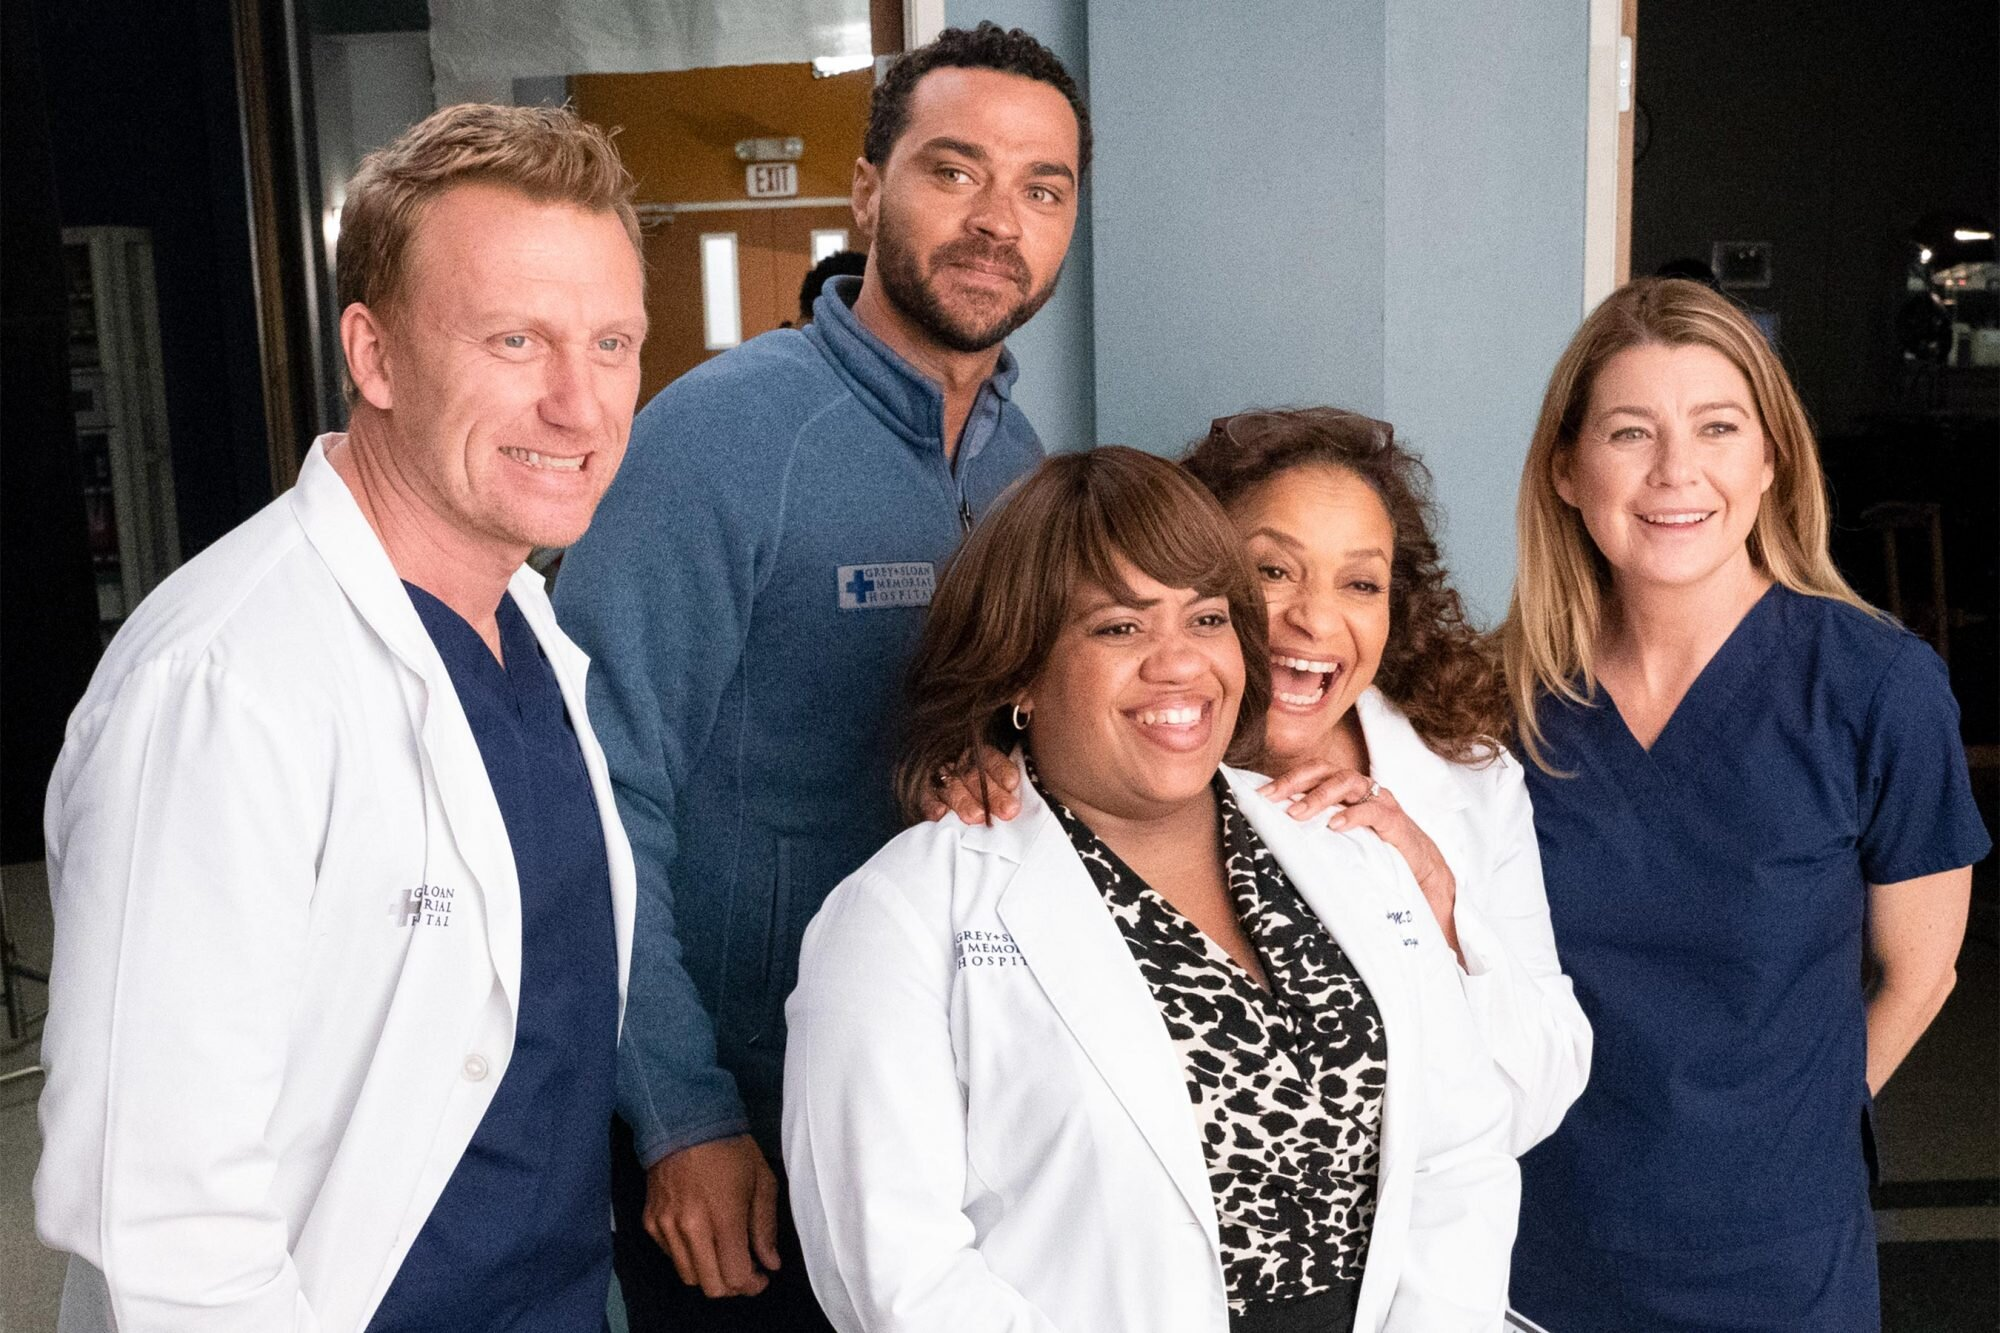 who is leaving greys anatomy 2019